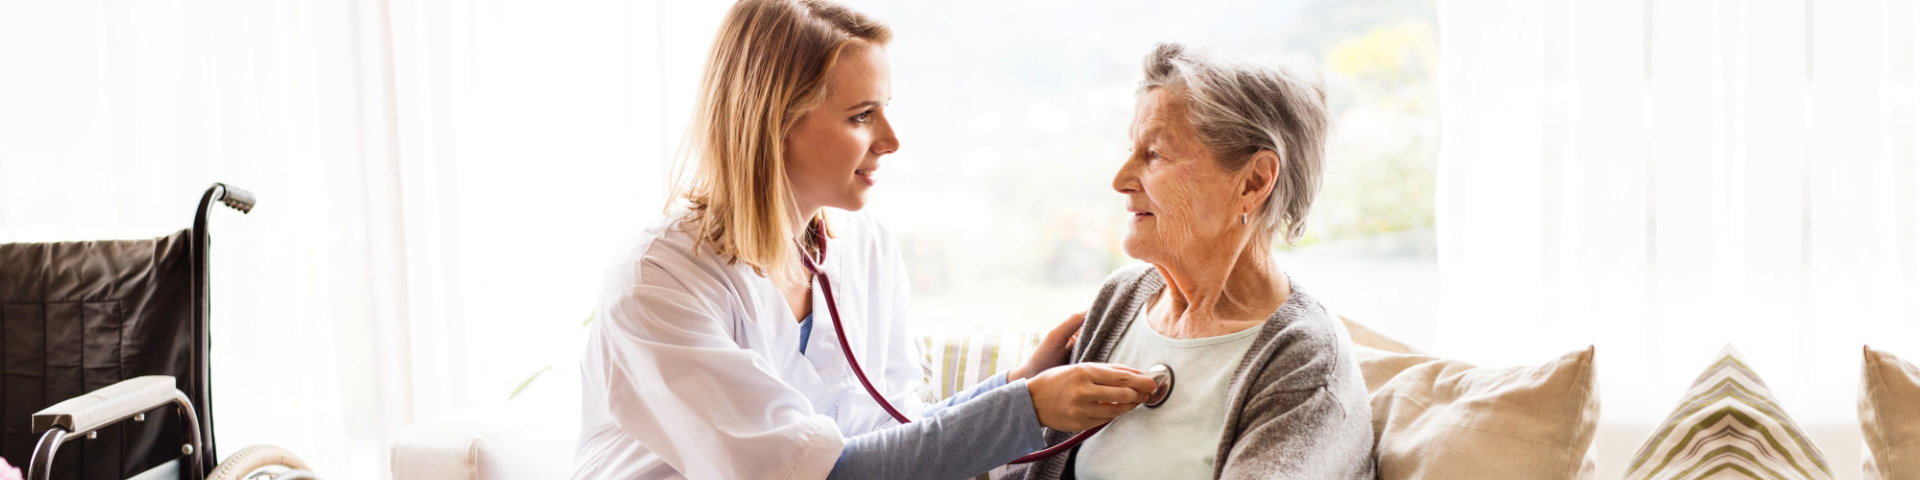 caregiver using her stethoscope on her senior patient